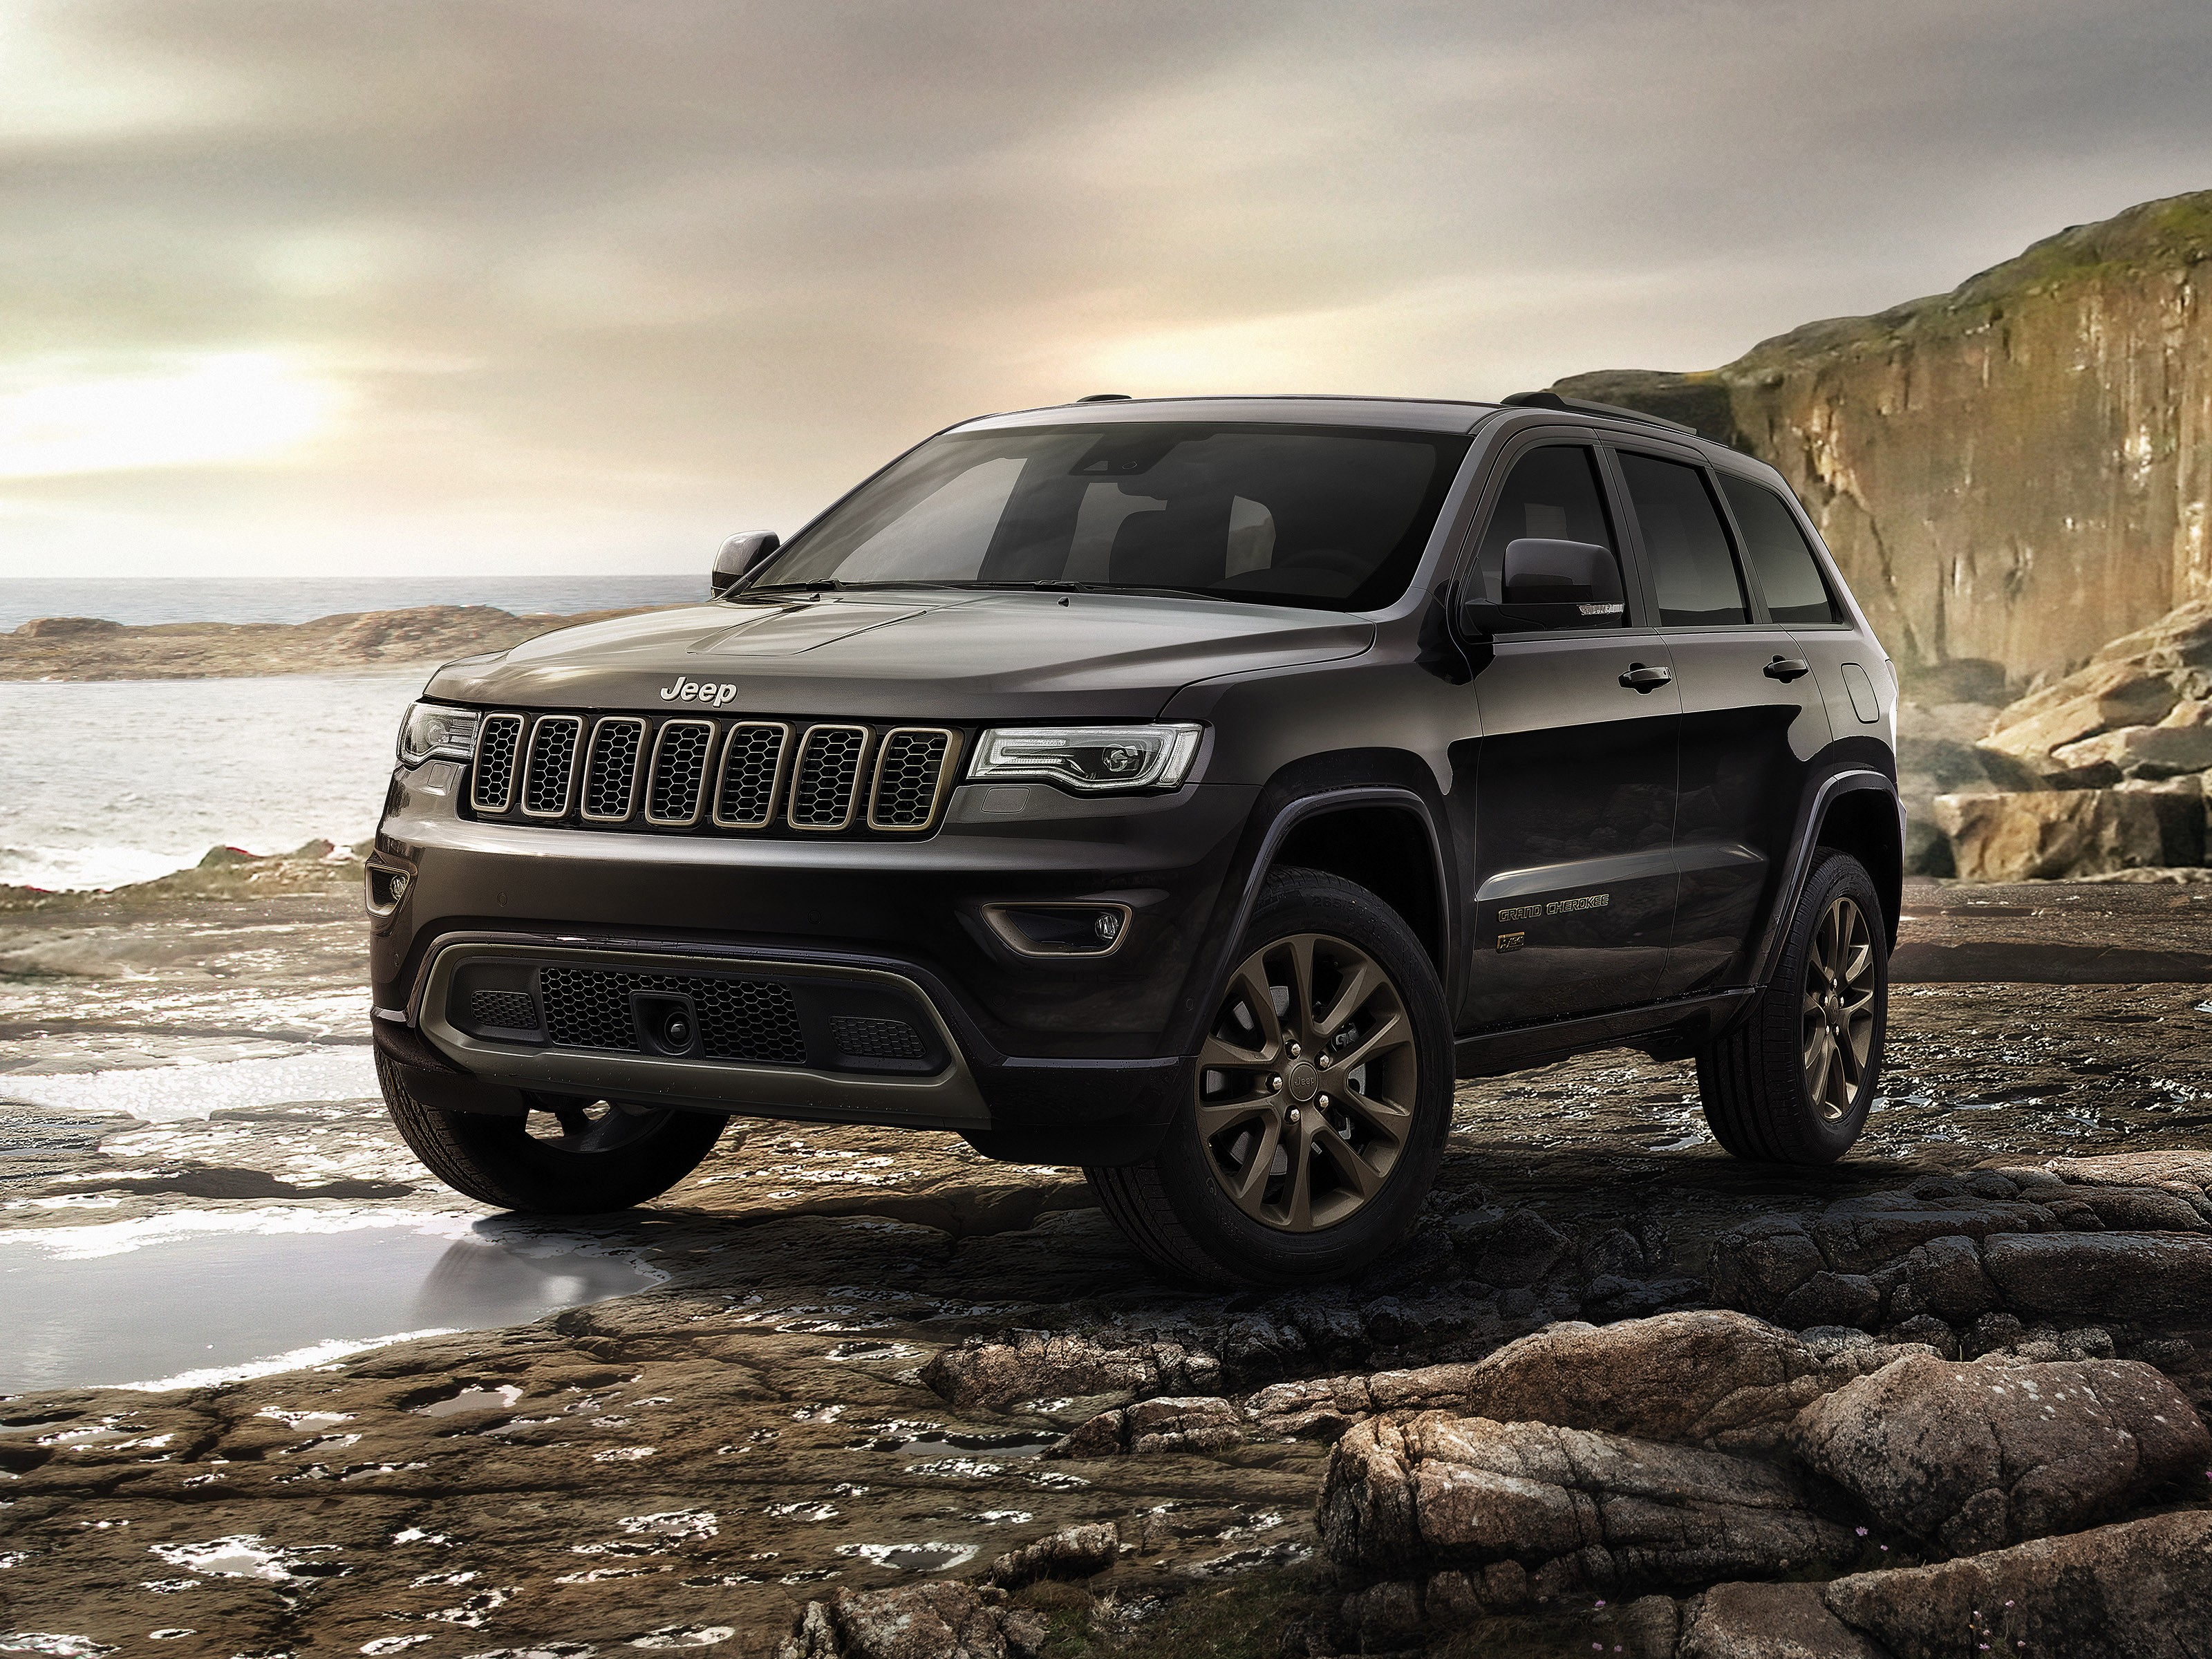 2016 Jeep Grand Cherokee 75th Anniversary WK2 Europe